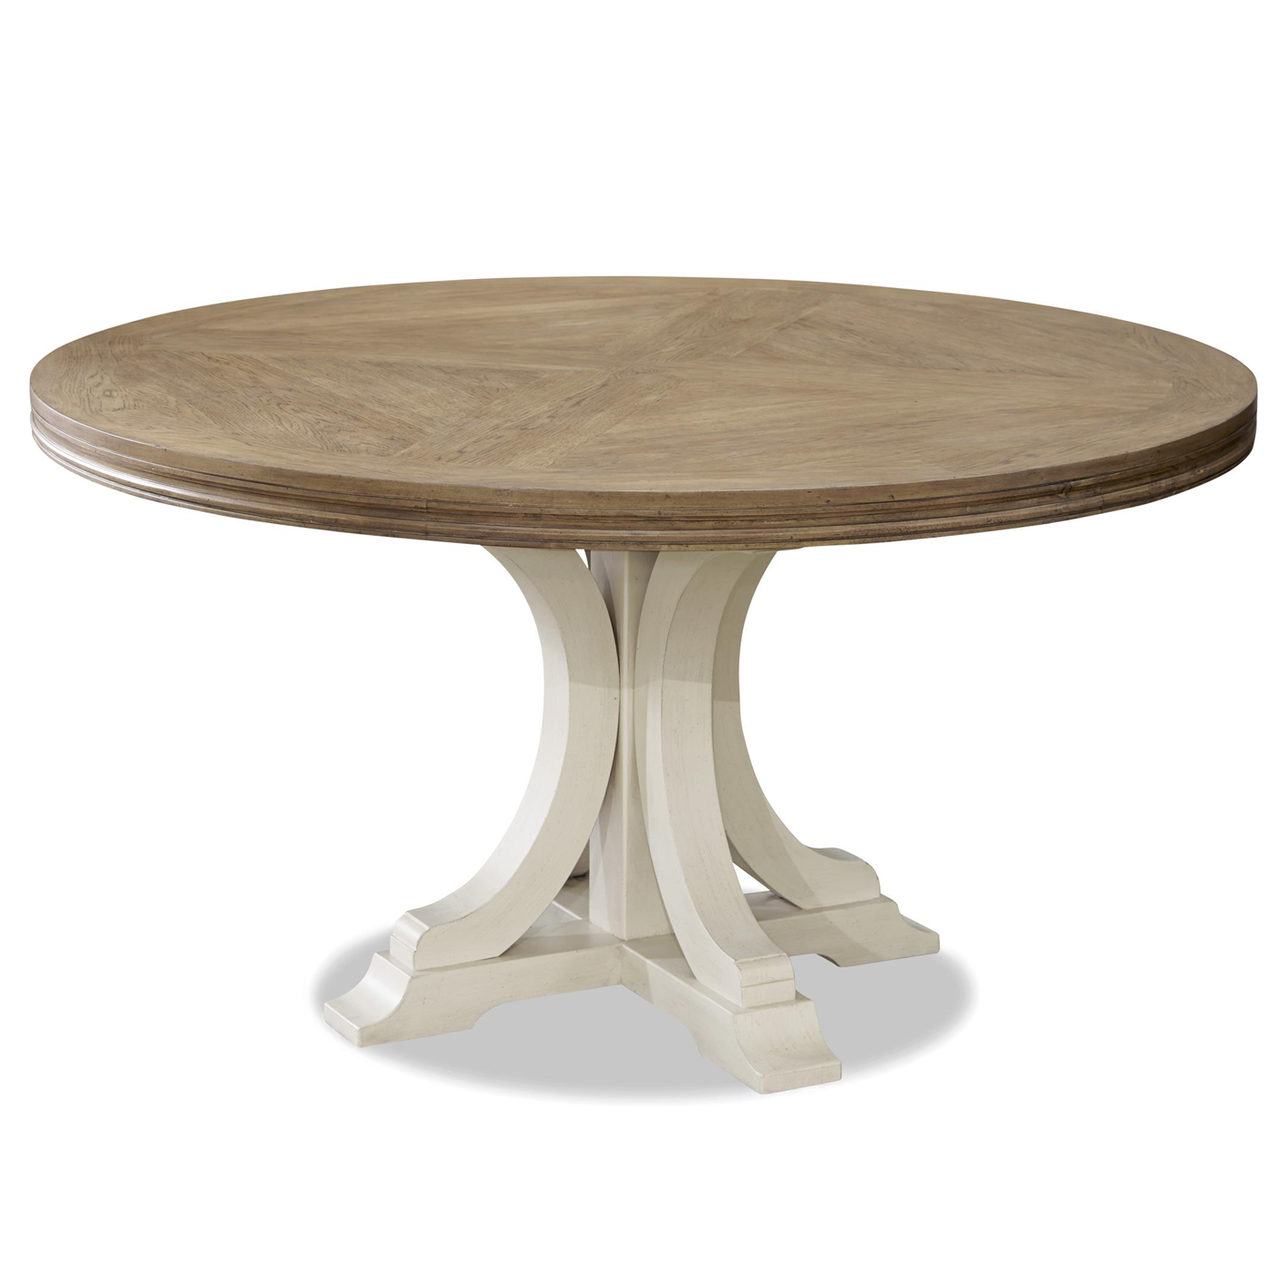 french modern white wood pedestal round dining table 58 zin home. Black Bedroom Furniture Sets. Home Design Ideas